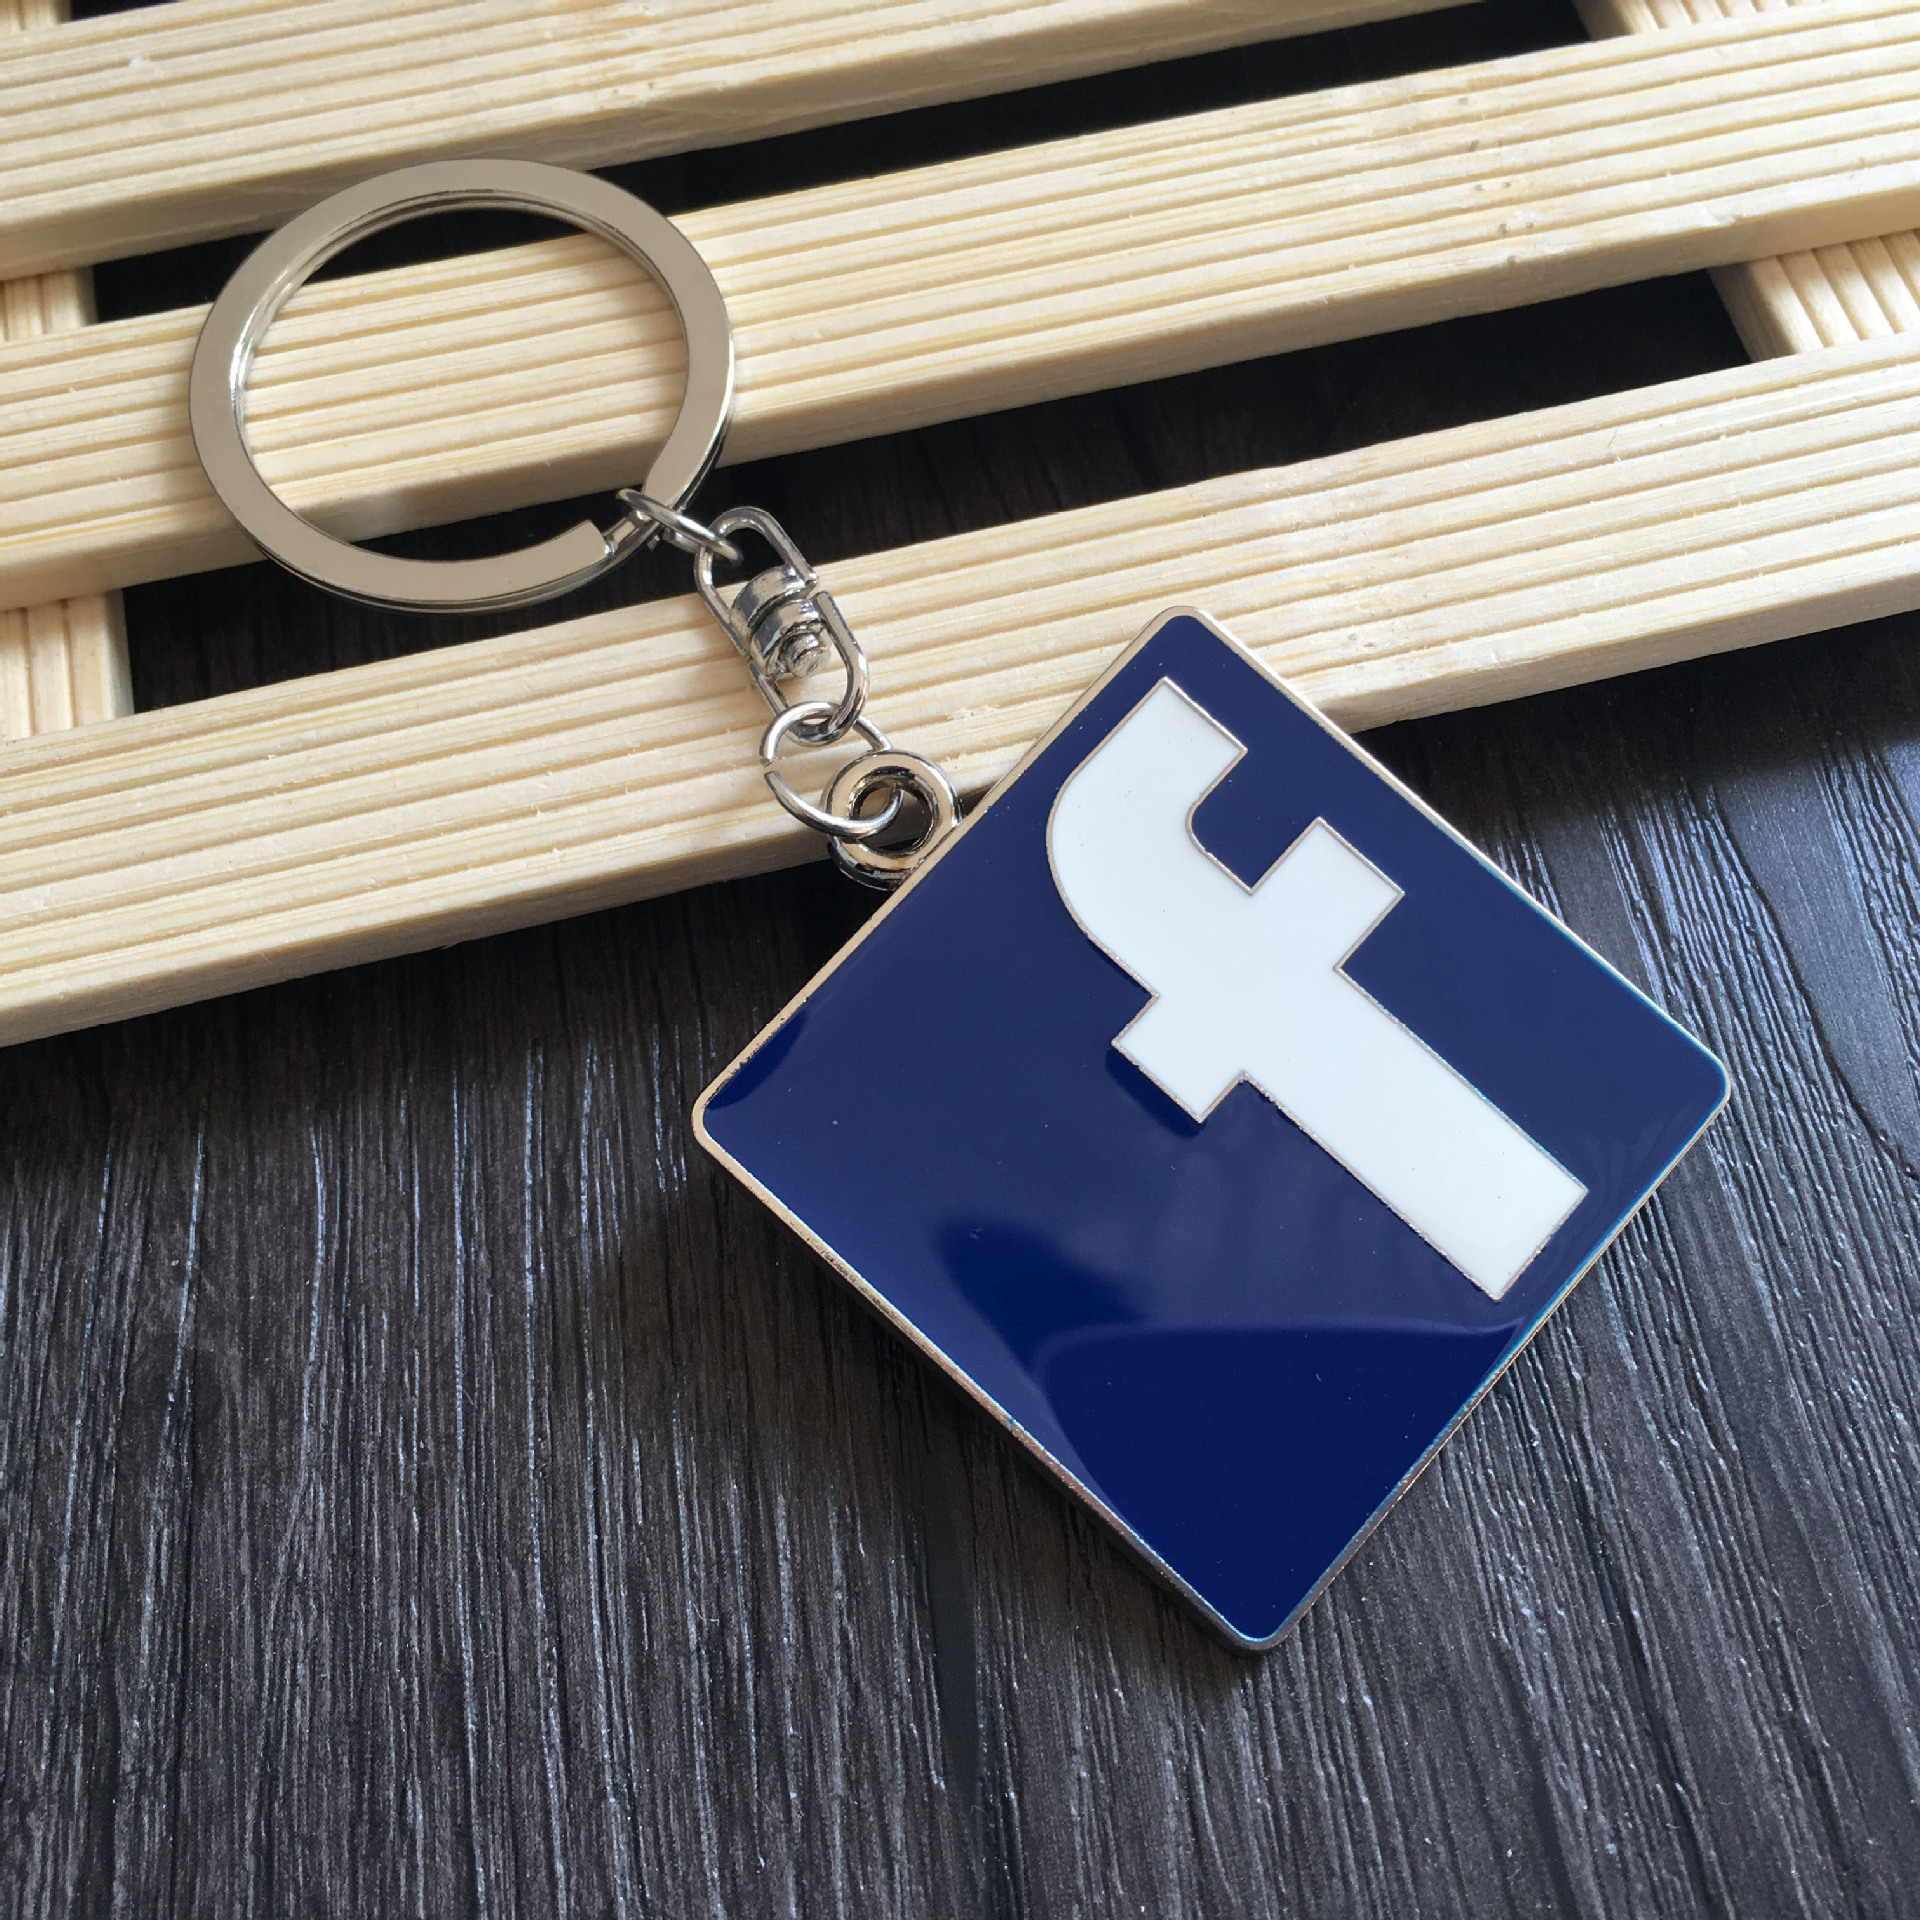 Facebook WhatsApp Badge Car <font><b>styling</b></font> Keychain For <font><b>Volvo</b></font> S60 XC90 V40 V70 <font><b>V50</b></font> V60 S40 S80 XC60 Nissan Qashqai X-TRAIL Juke image